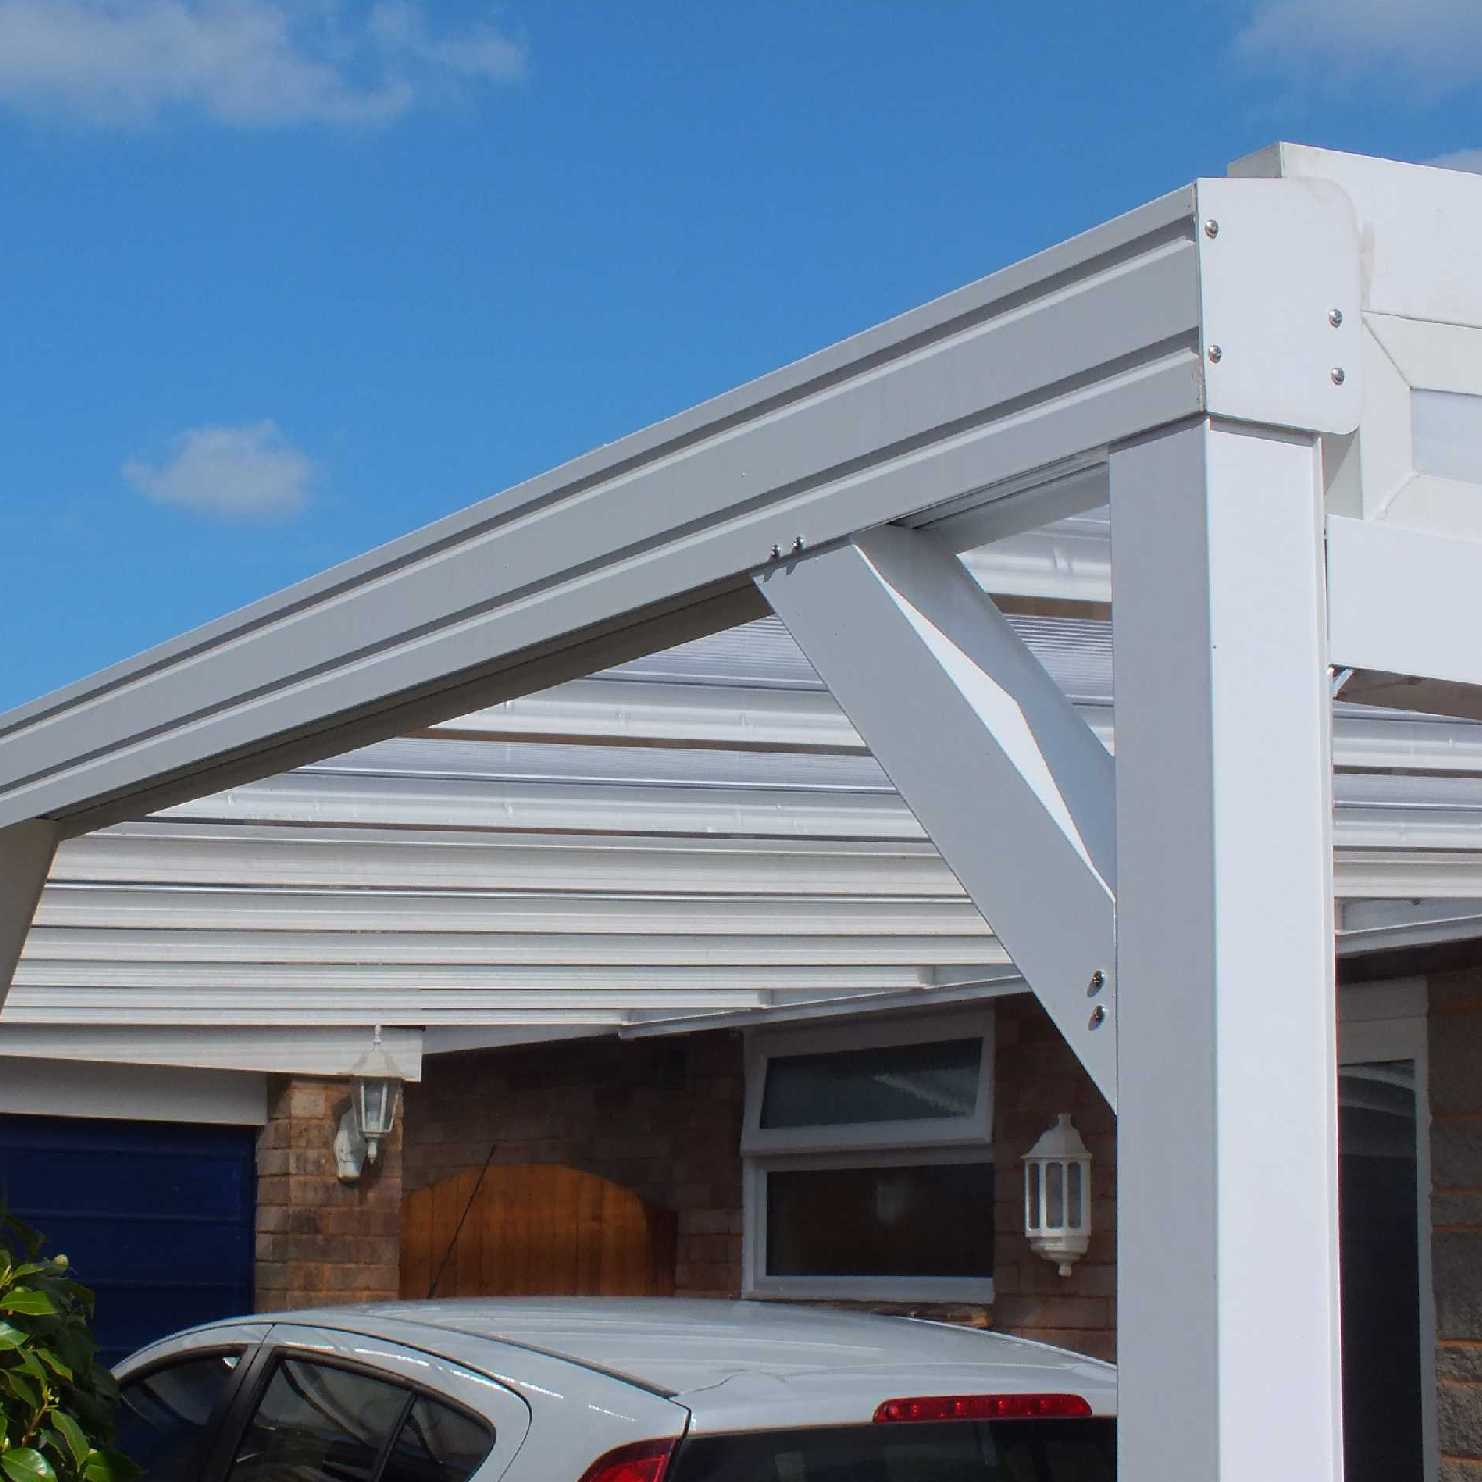 Great deals on Omega Smart Lean-To Canopy with 16mm Polycarbonate Glazing - 7.4m (W) x 4.5m (P), (4) Supporting Posts